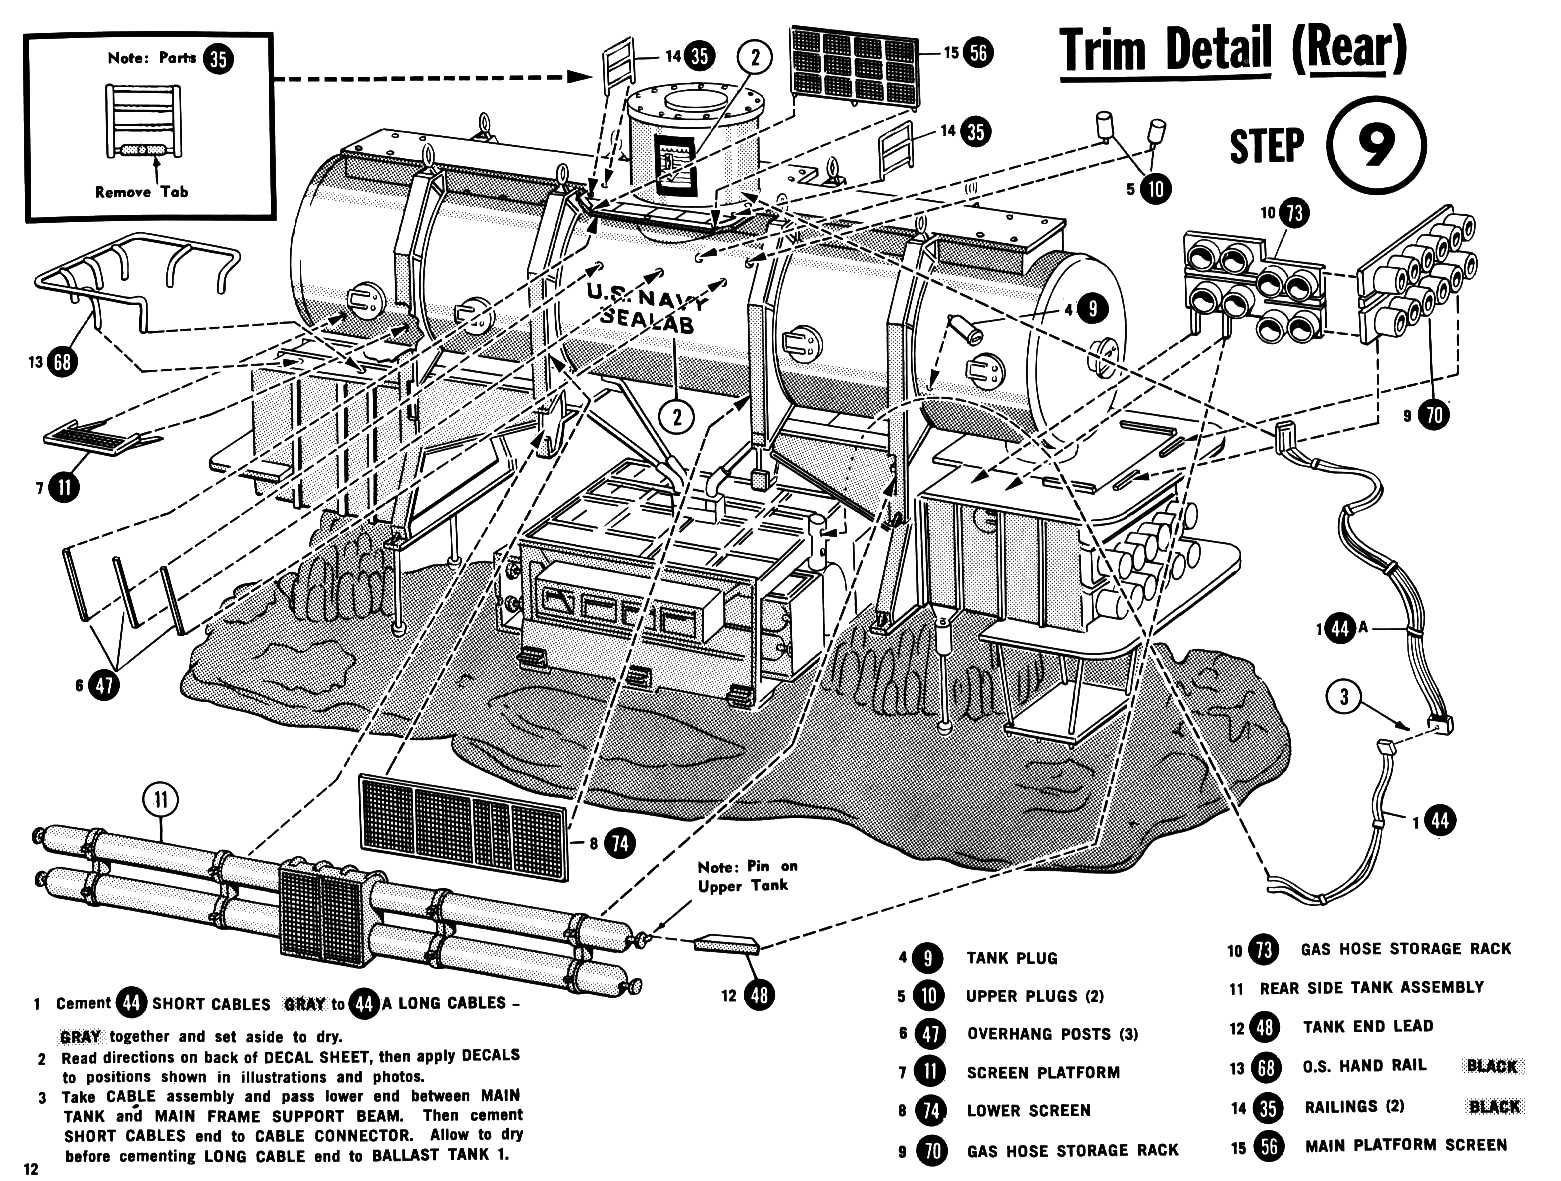 Sealab I Iii And Iii Us Navy Underwater Research Laboratoy